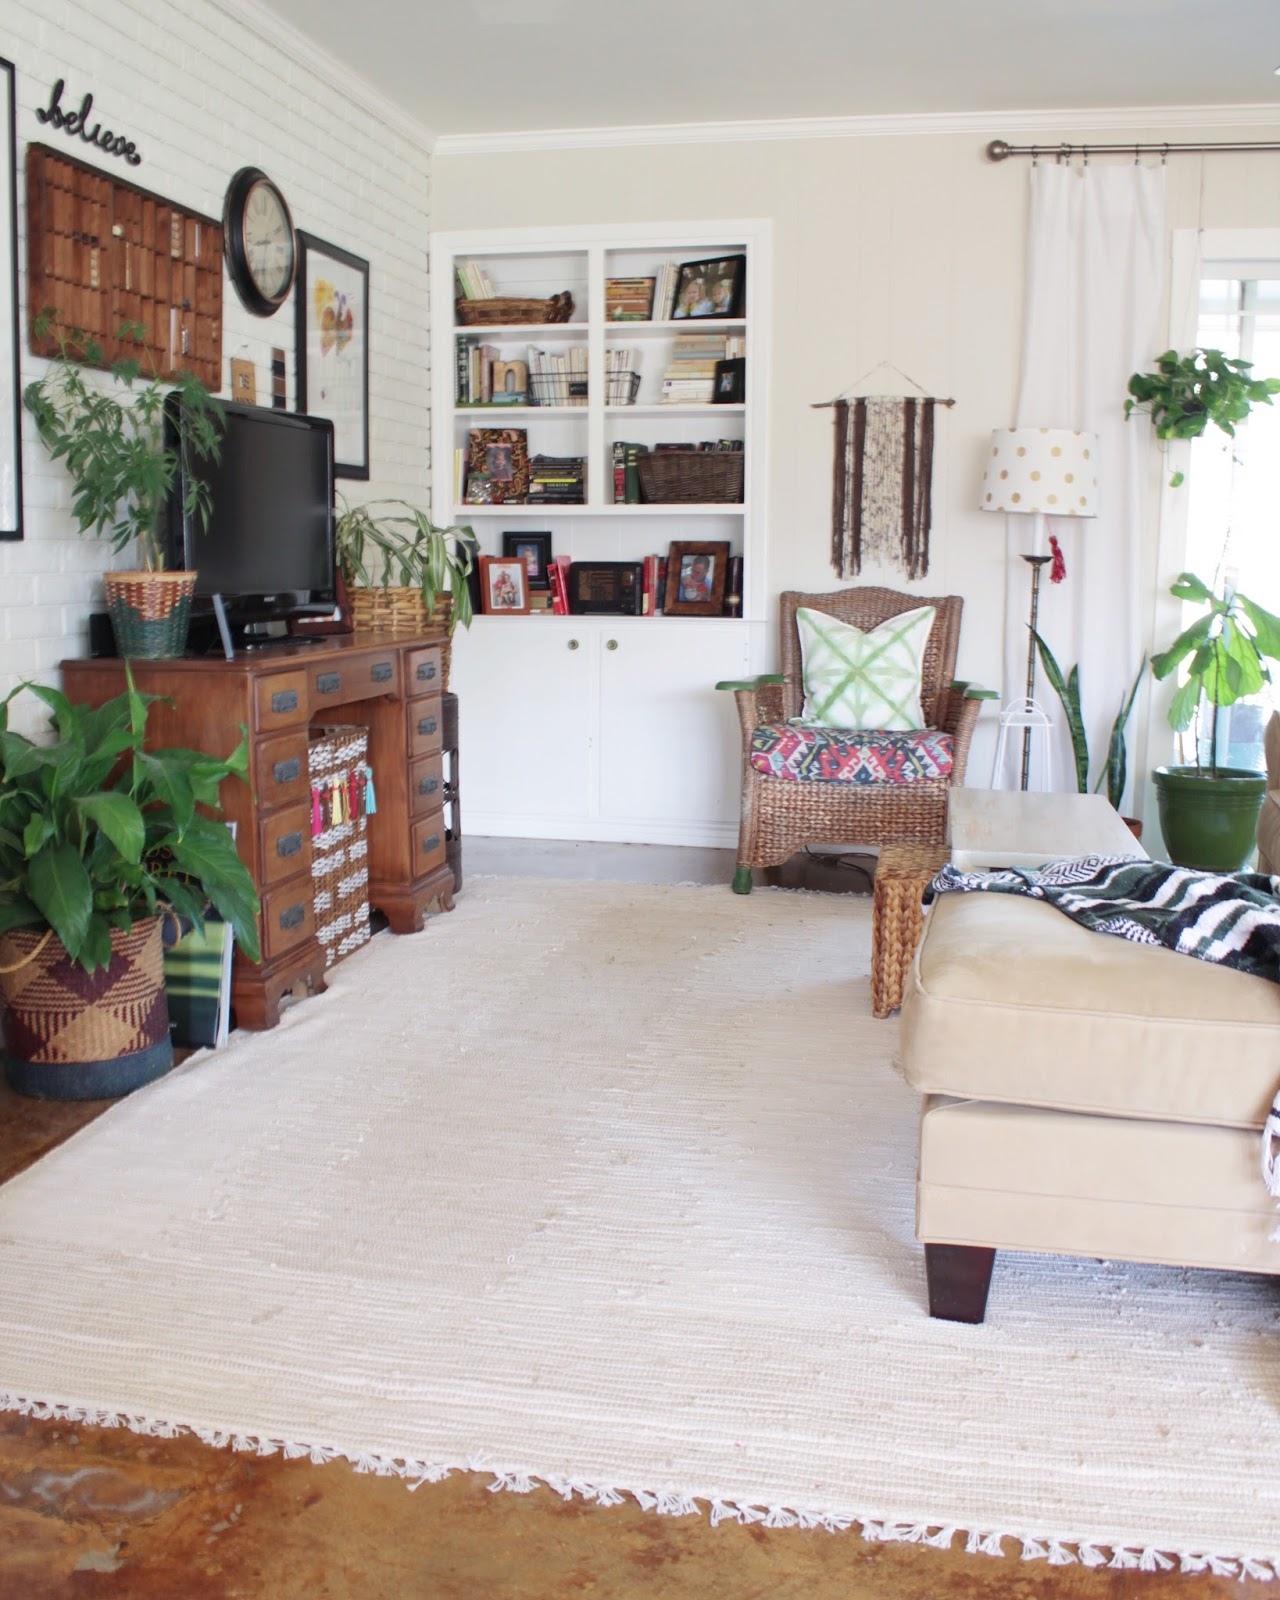 House Homemade: Living Room Switch up